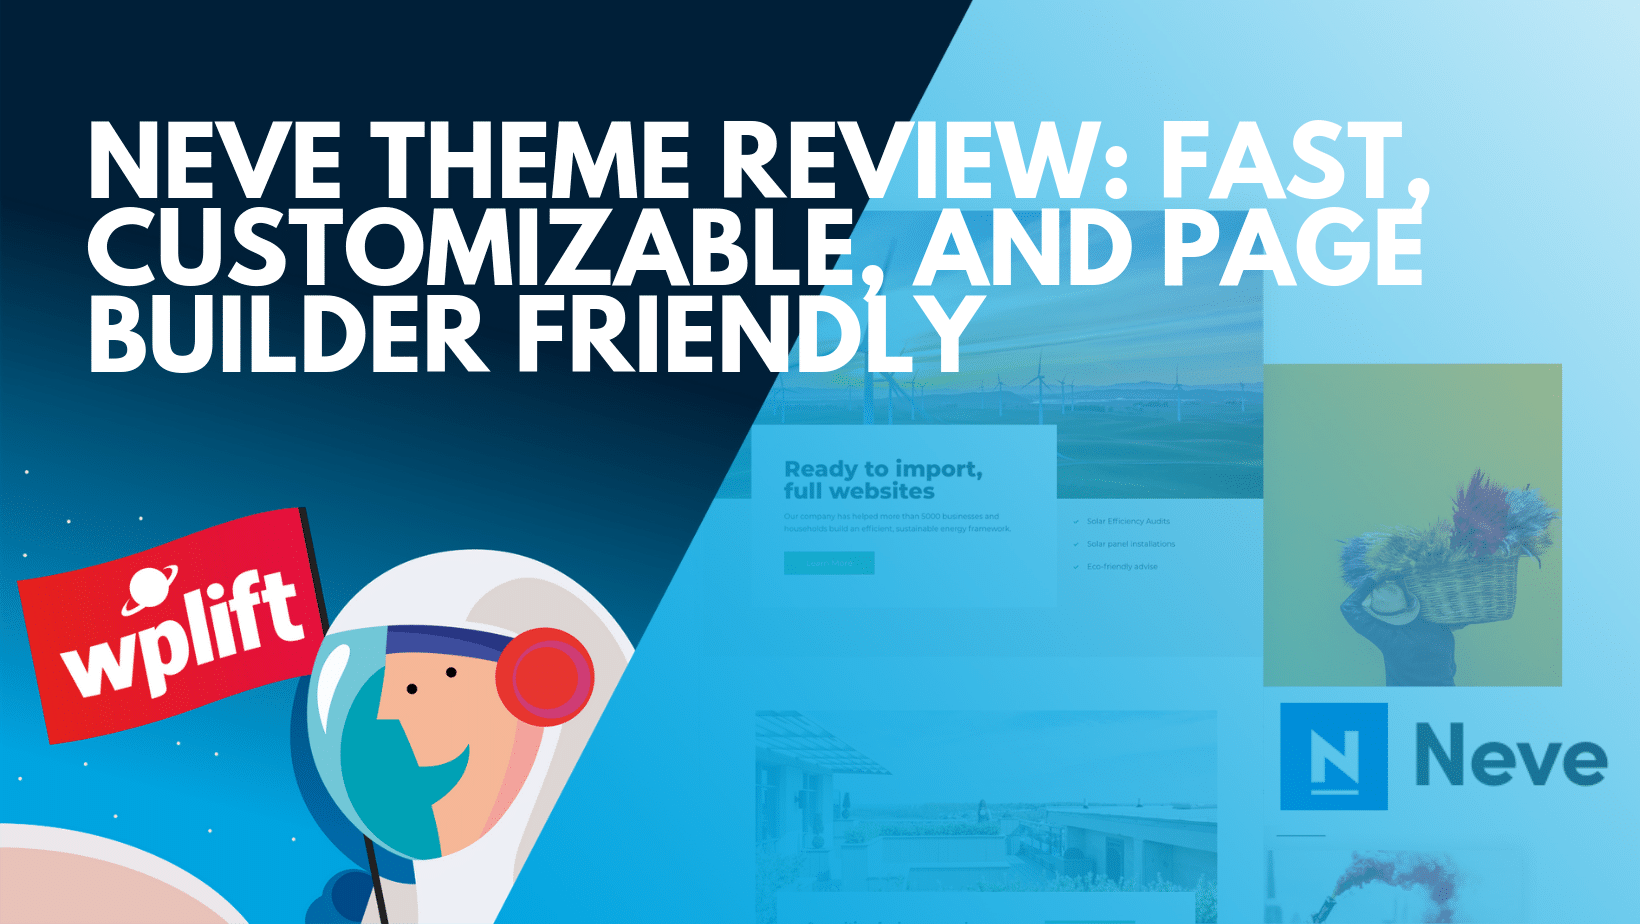 Fast, Customizable, and Page Builder Friendly